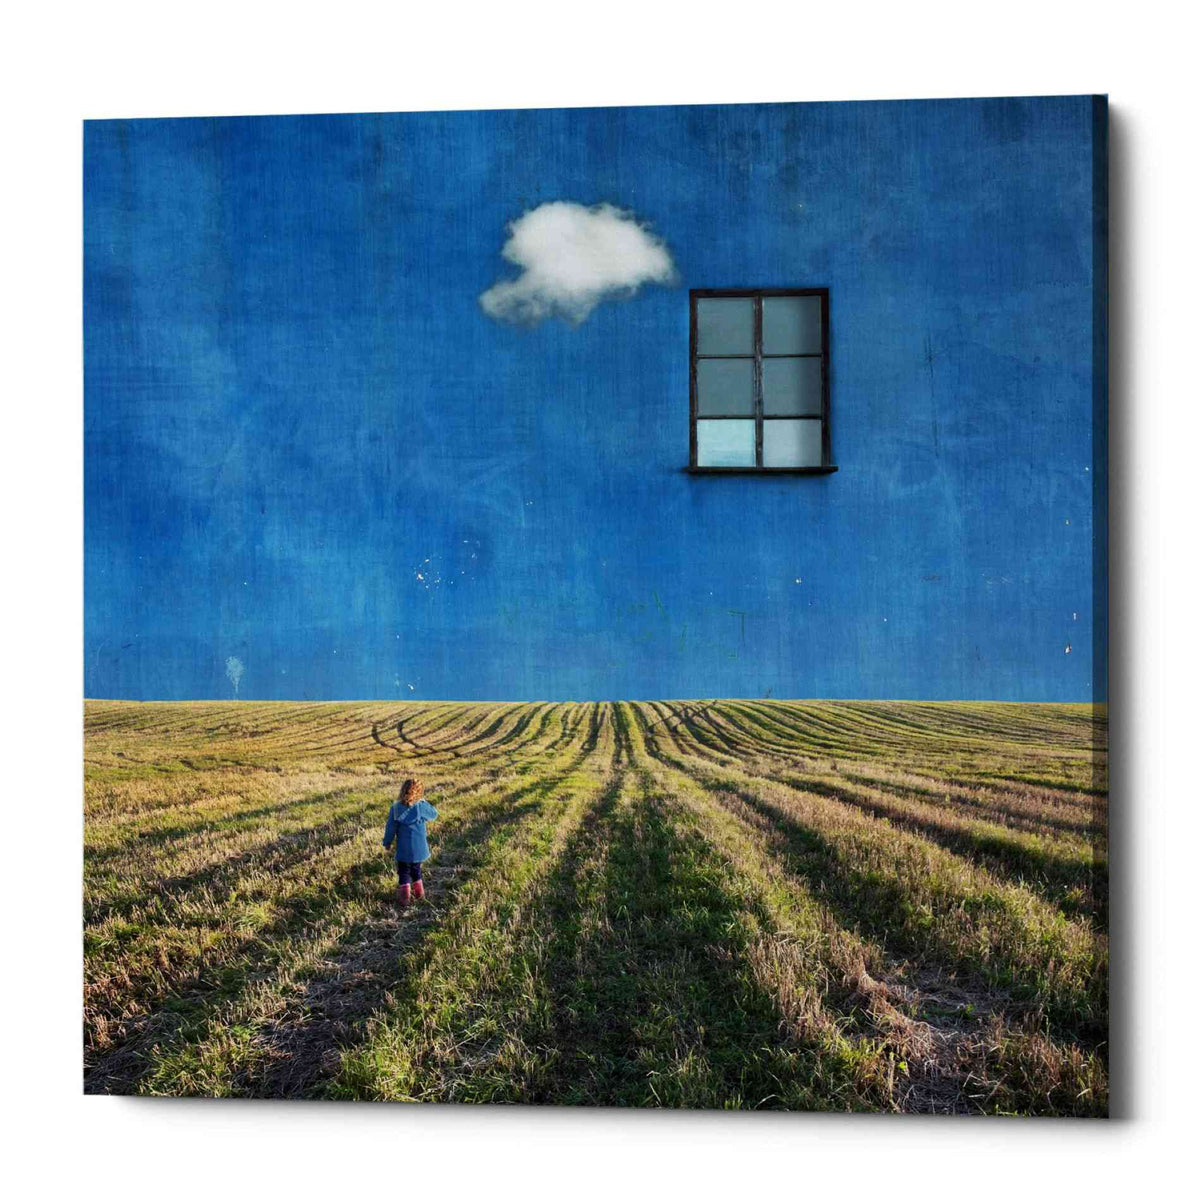 Epic Graffiti 'Big Blue' by Dariusz Klimczak, Canvas Wall Art